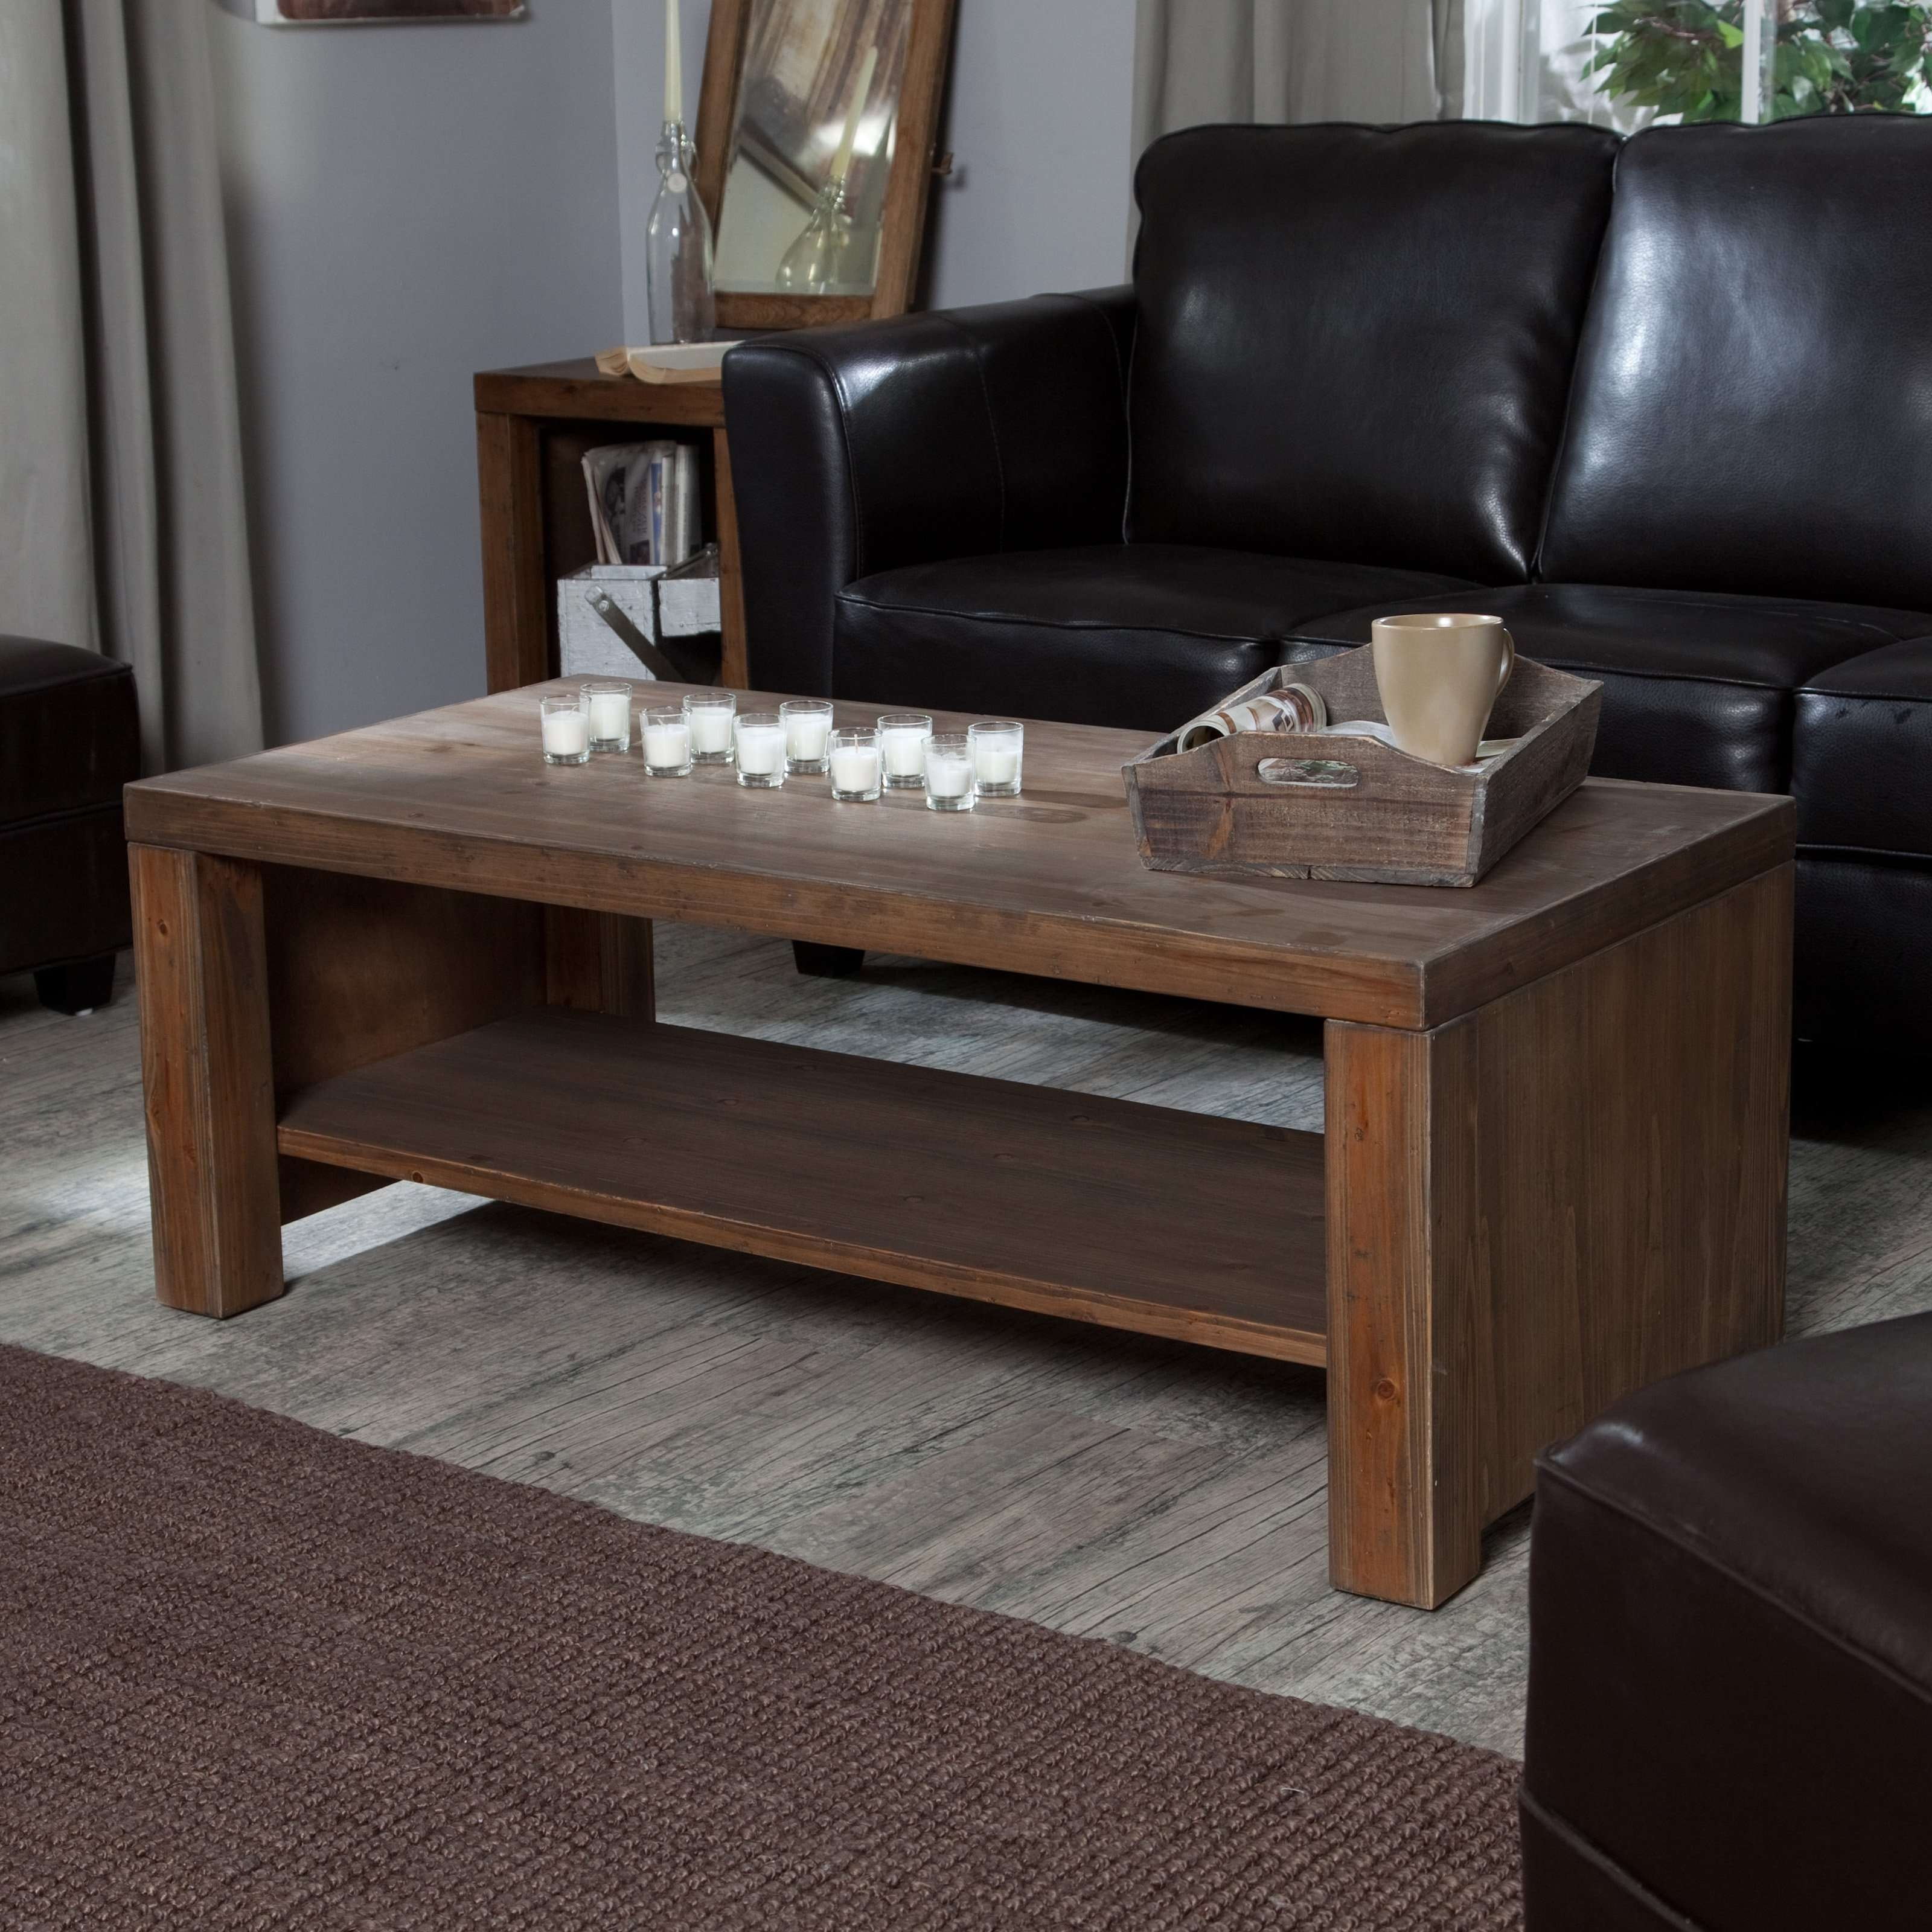 Hayneedle Regarding Latest Solid Wood Coffee Tables (View 11 of 20)